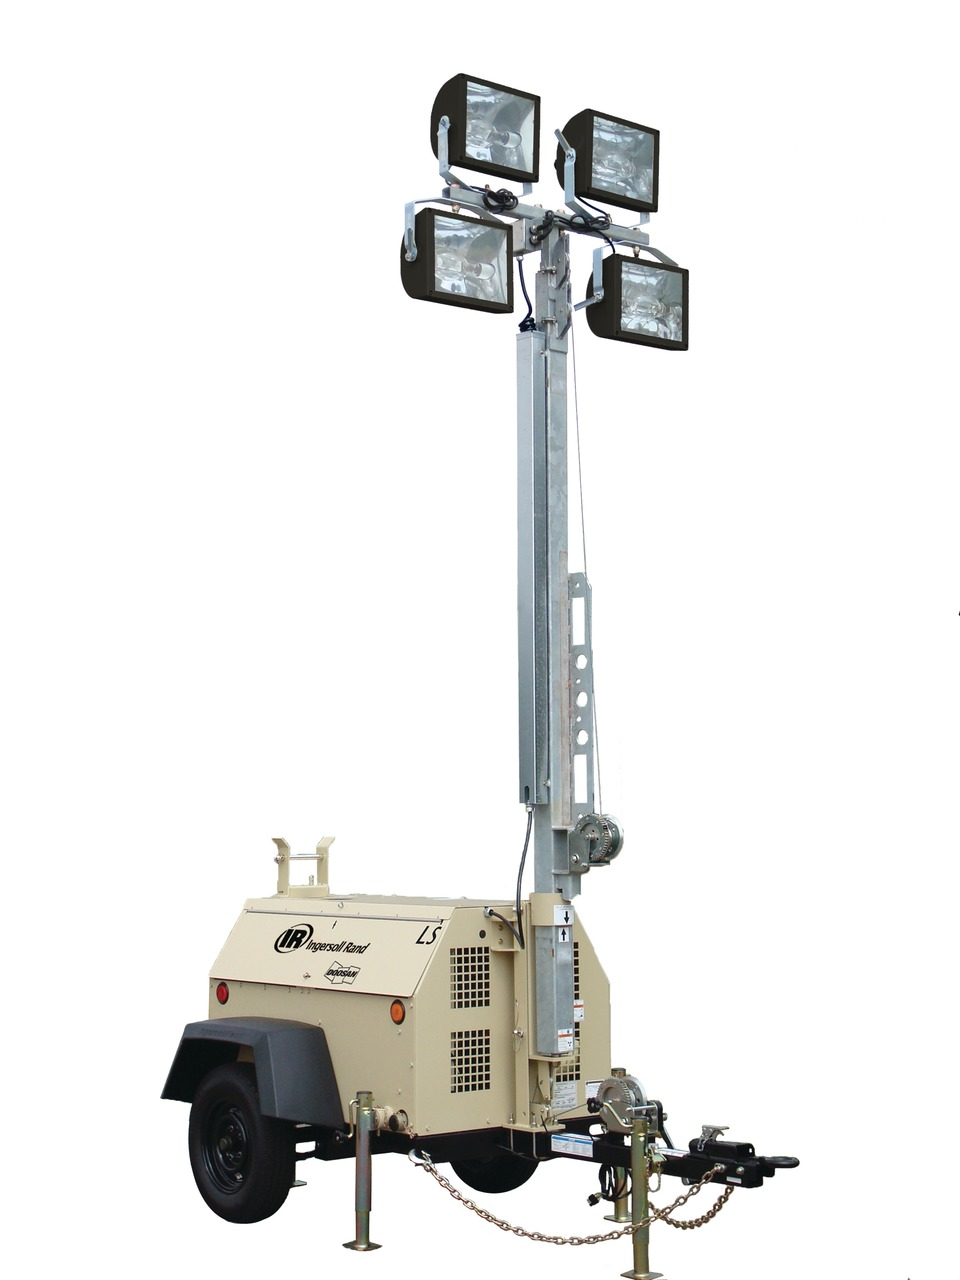 DOOSAN PORTABLE POWER Ingersoll Rand LightSource (LS) light tower in Large  Area Lighting